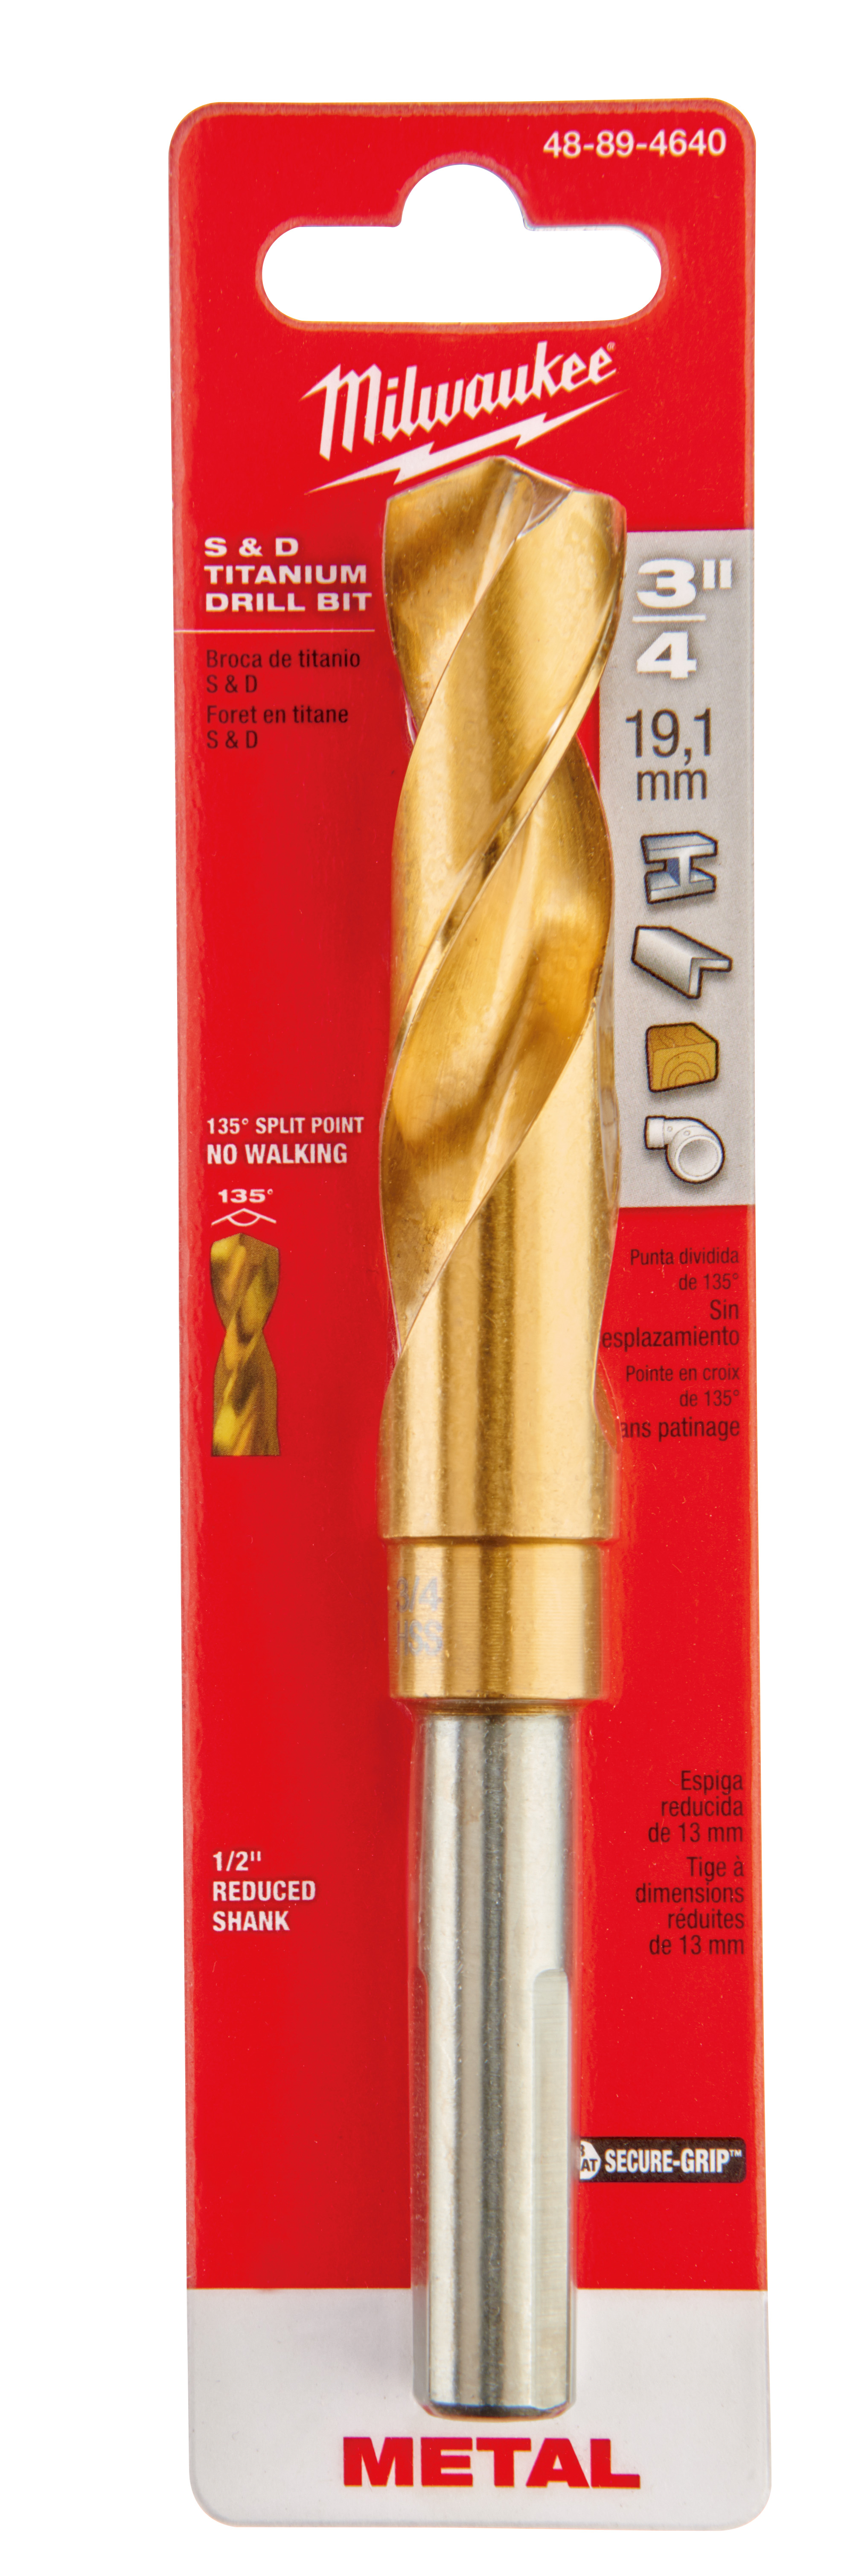 Milwaukee® 48-89-4640 Silver and Deming Drill Bit, 3/4 in Drill - Fraction, 0.75 in Drill - Decimal Inch, 1/2 in Shank, HSS